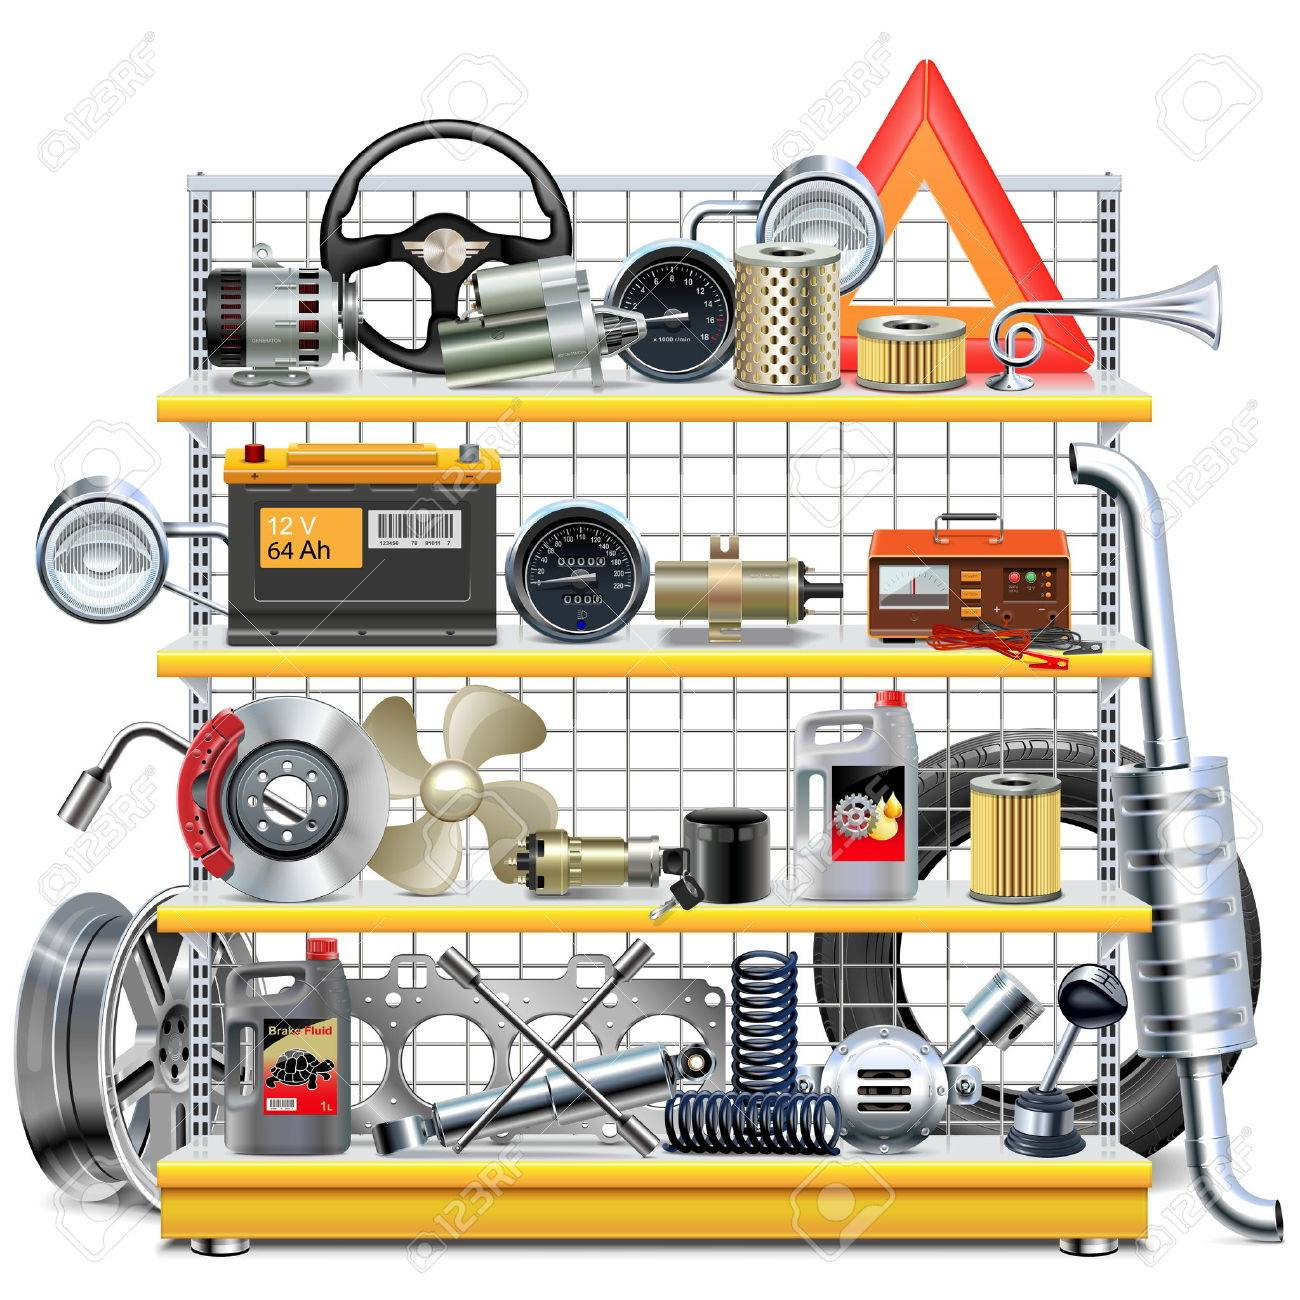 Supermarket Shelves with Car Spares isolated on white background - 54358664